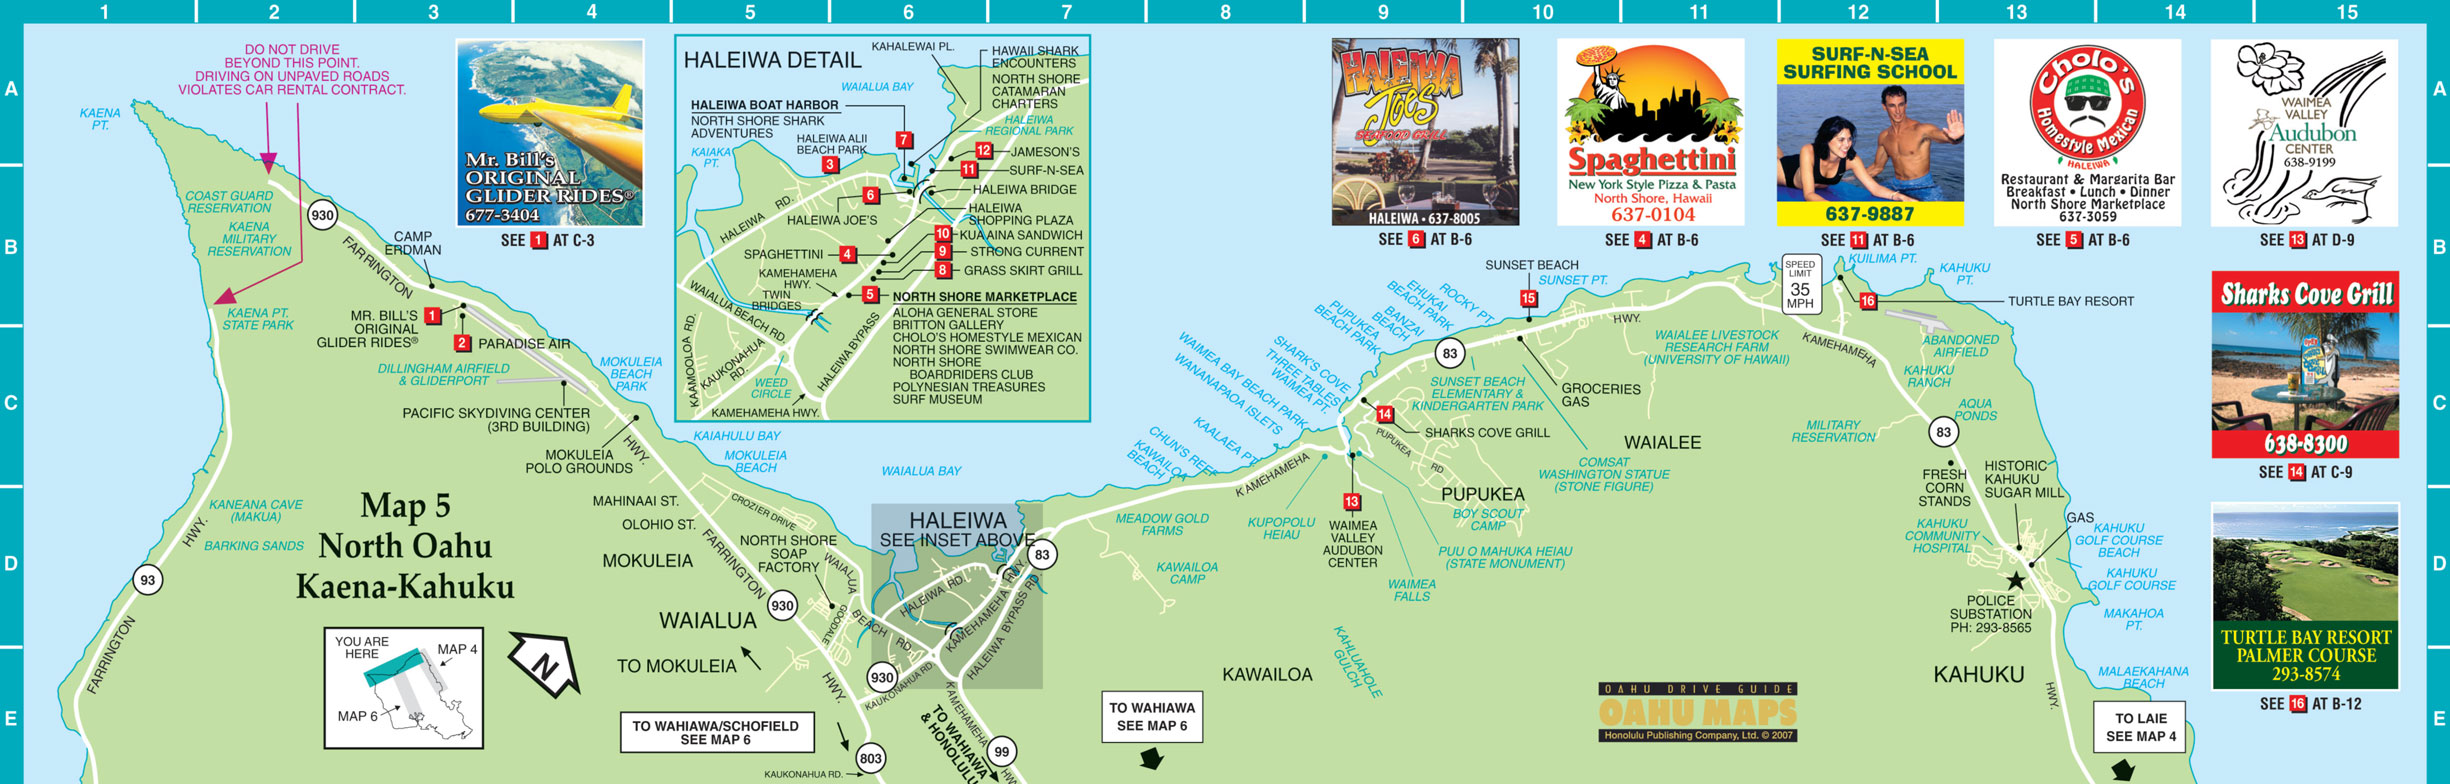 Oahu North Shore Tourist Map Oahu Hawaii mappery – Tourist Map Of Maui